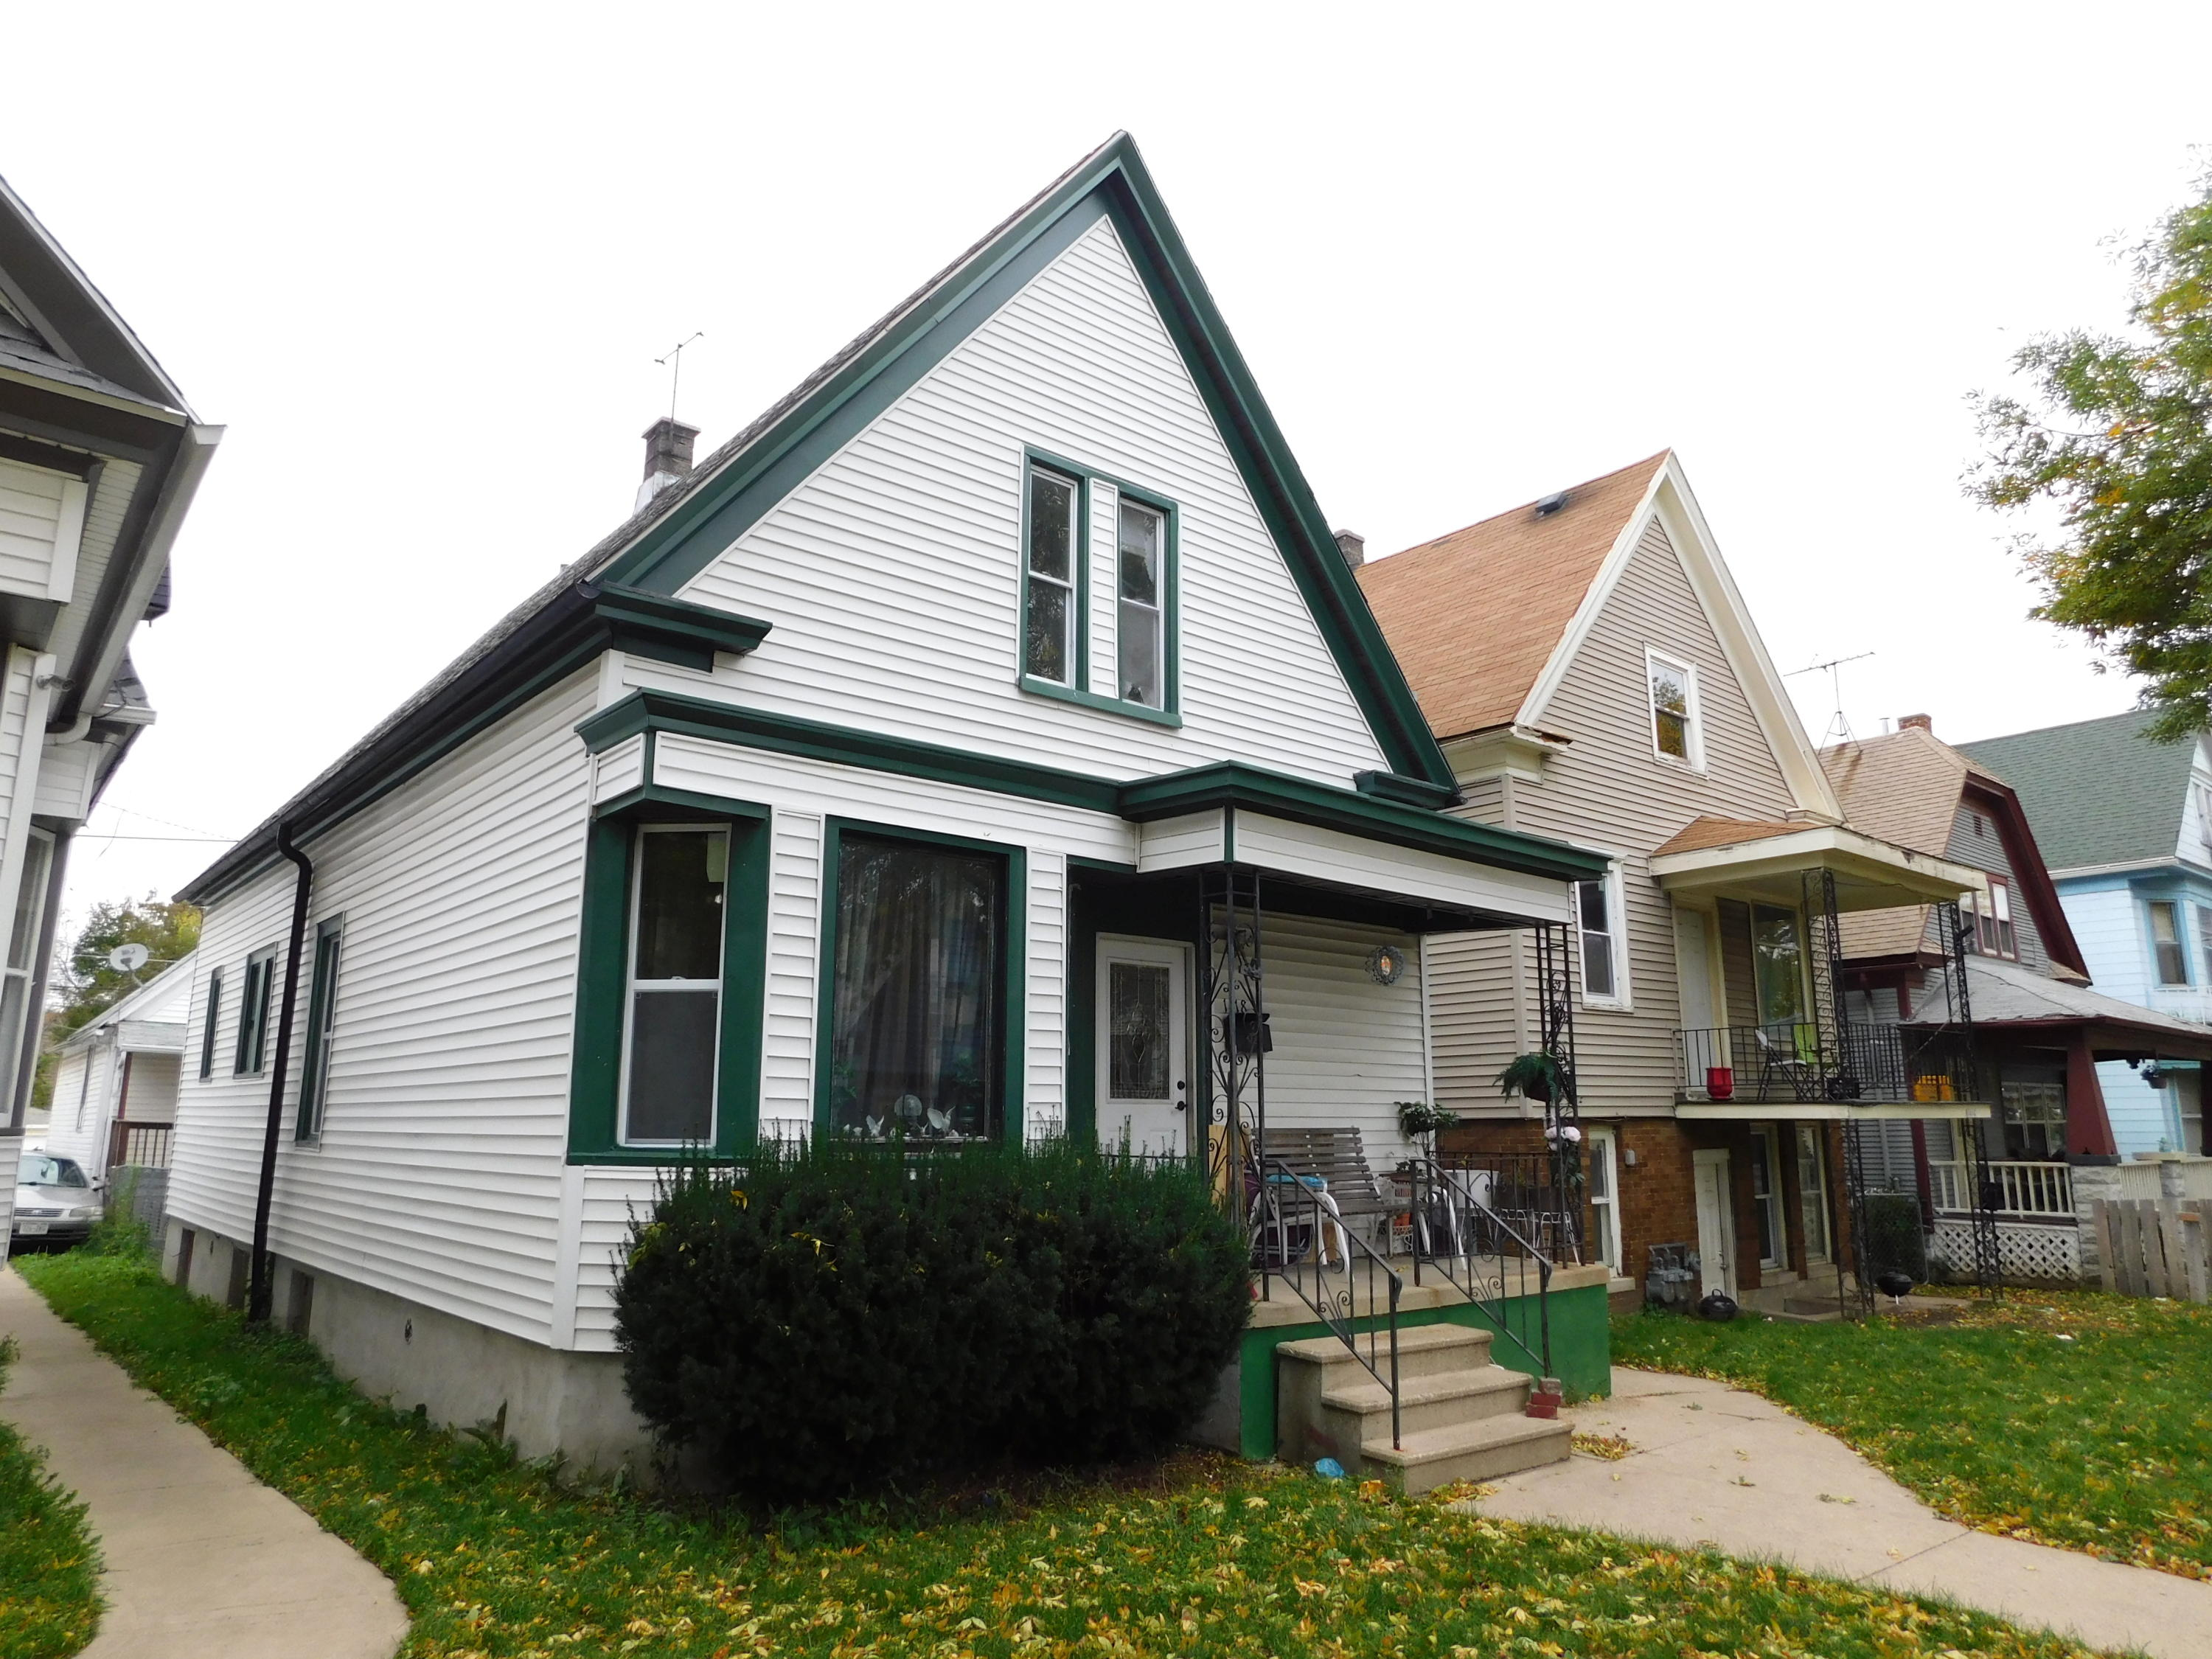 1418 Hayes Ave, Milwaukee, Wisconsin 53215, 4 Bedrooms Bedrooms, 7 Rooms Rooms,1 BathroomBathrooms,Two-Family,For Sale,Hayes Ave,1,1610837